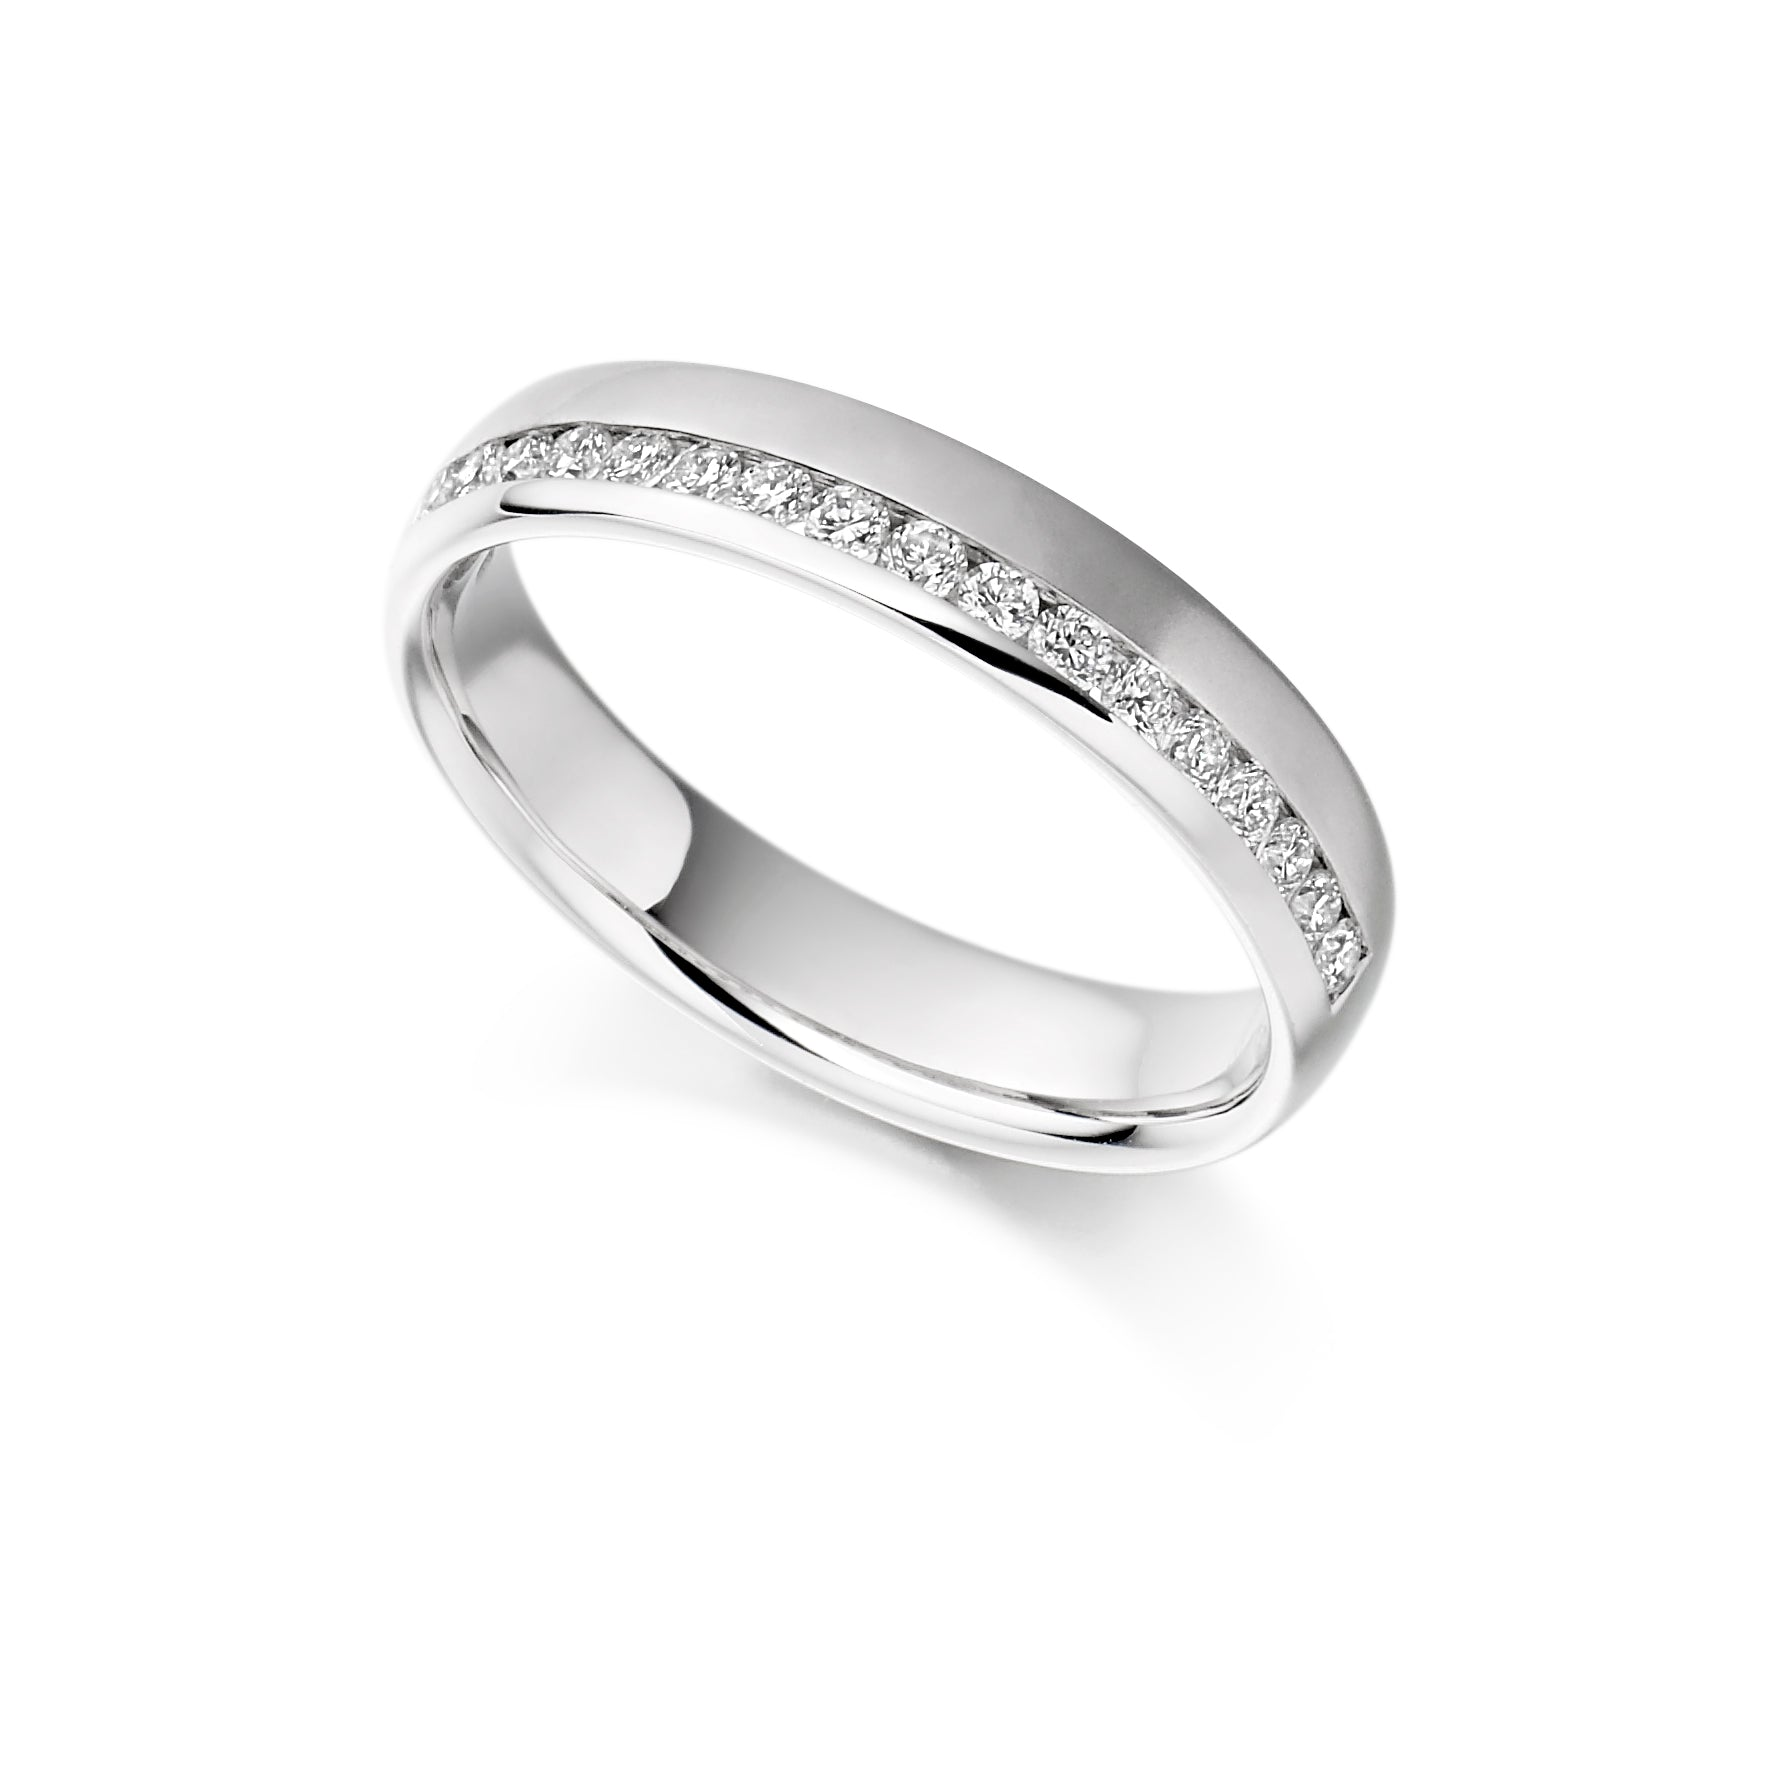 18ct White Gold 0.26ct Round Brilliant Cut Diamonds Channel Set Offset Vintage Wedding Ring